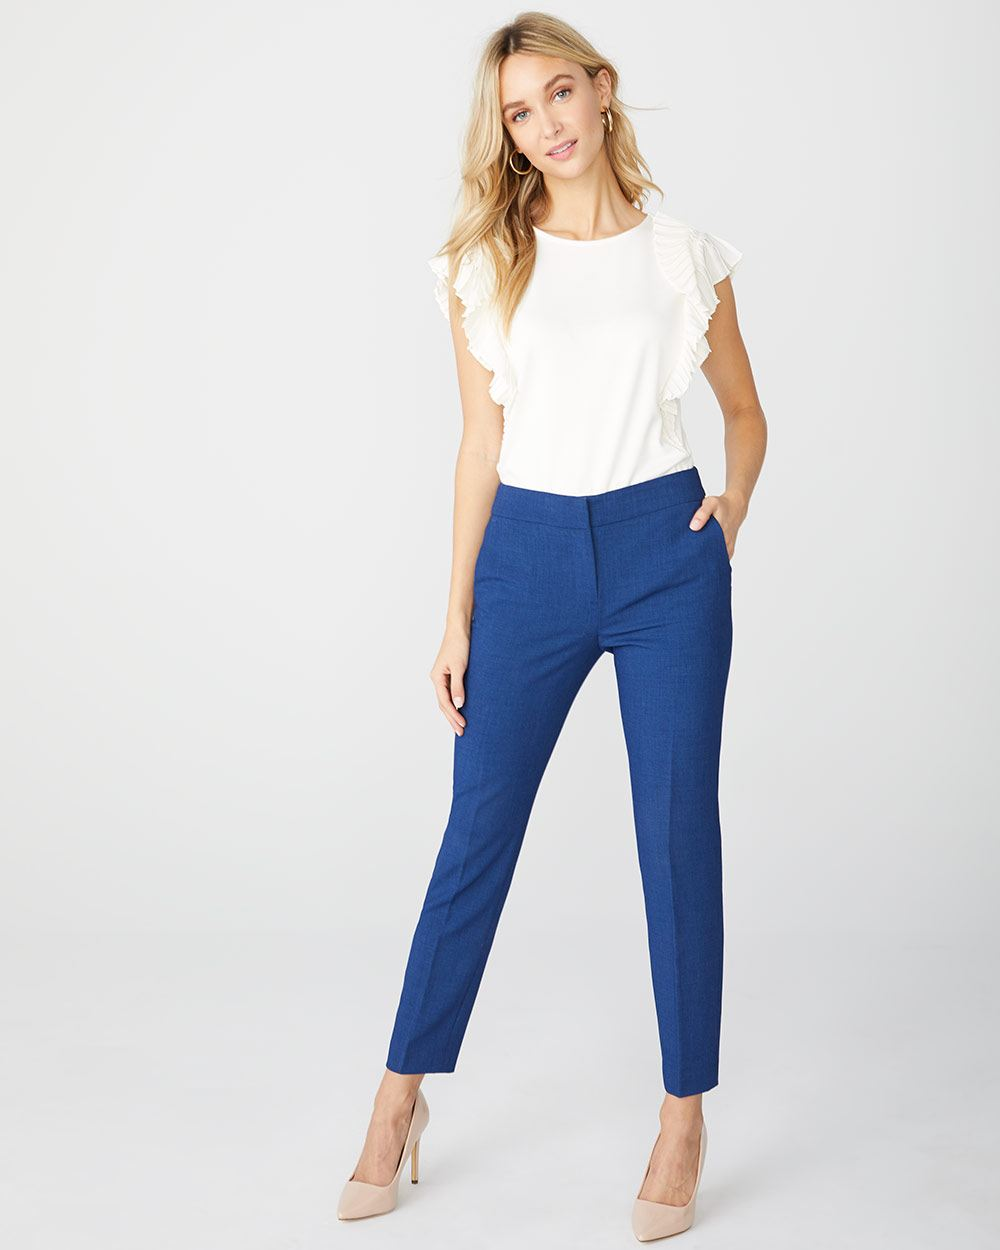 Cobalt blue Signature fit Slim Leg Ankle Pant